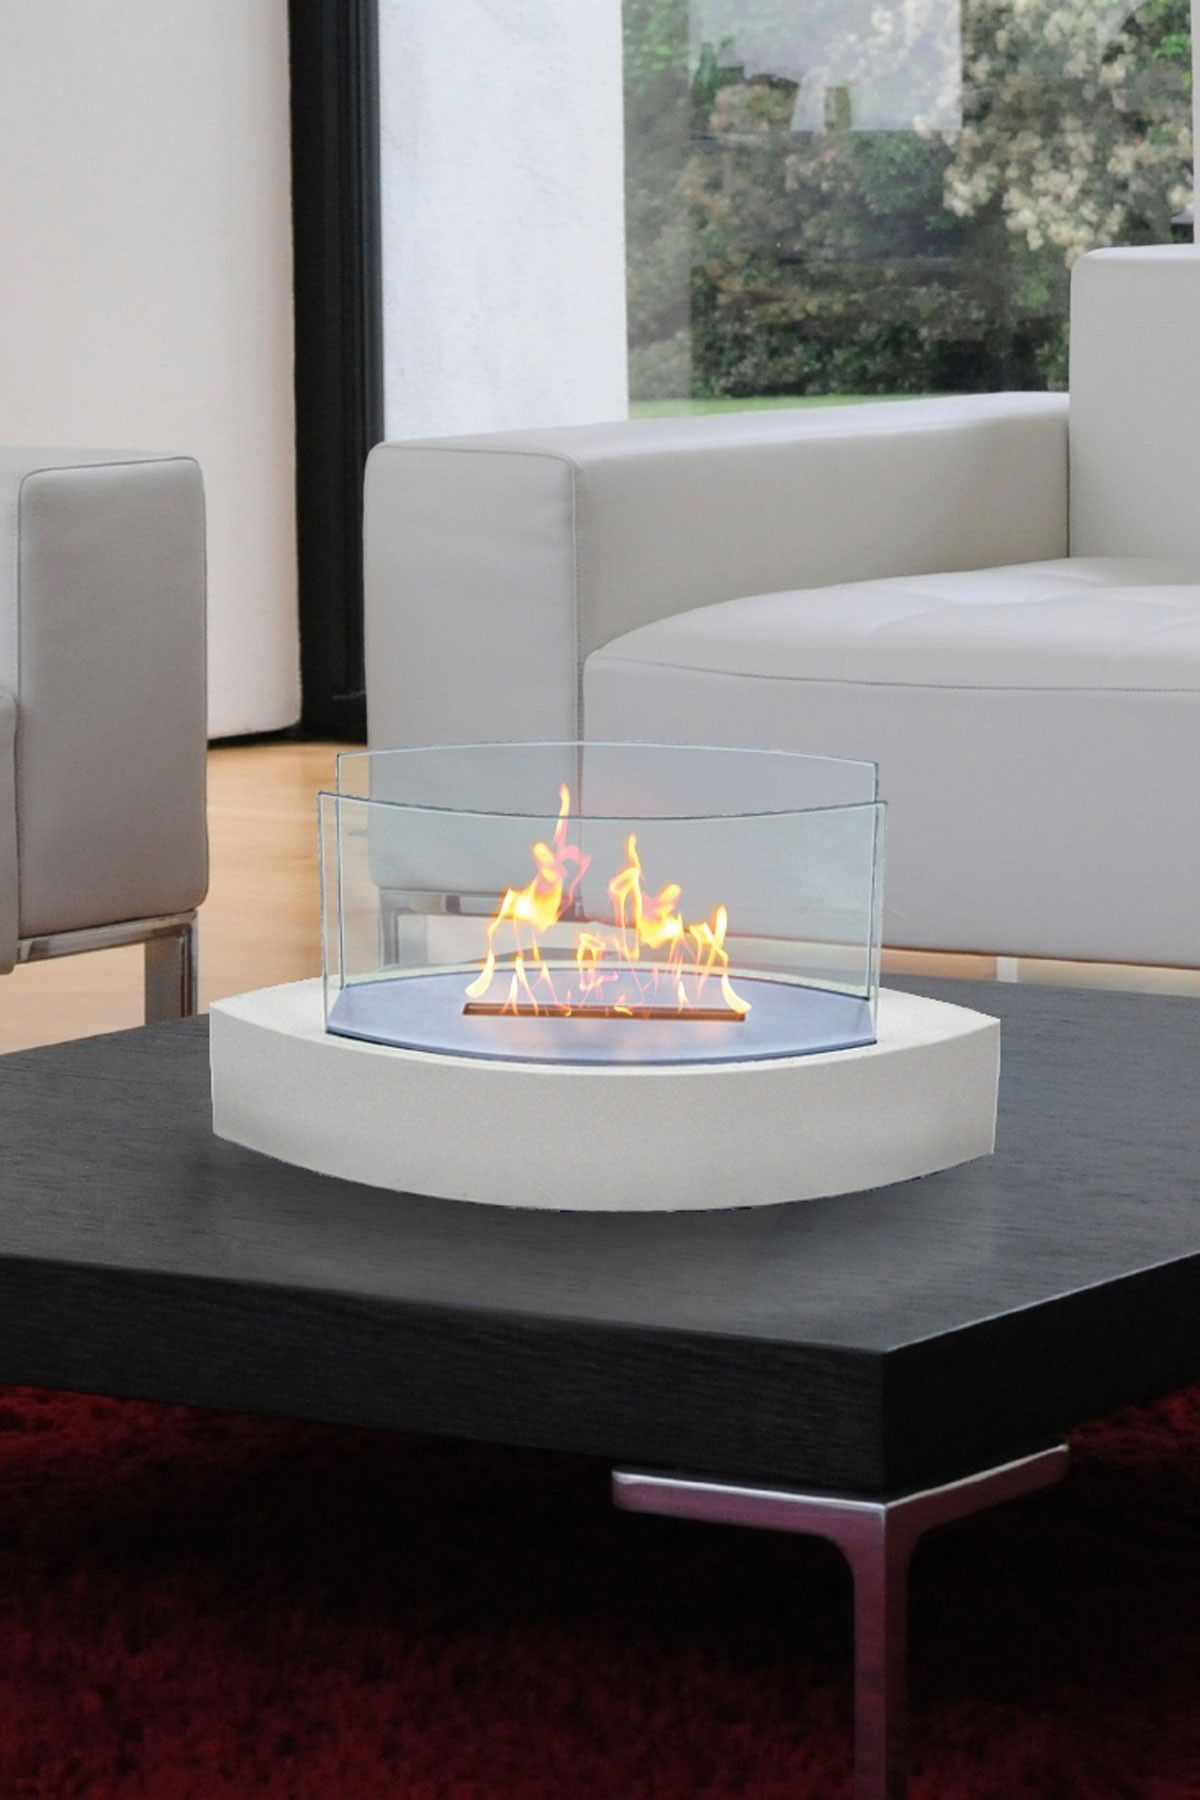 Table Top Indoor Fireplace Tabletop Fireplaces Home Decor